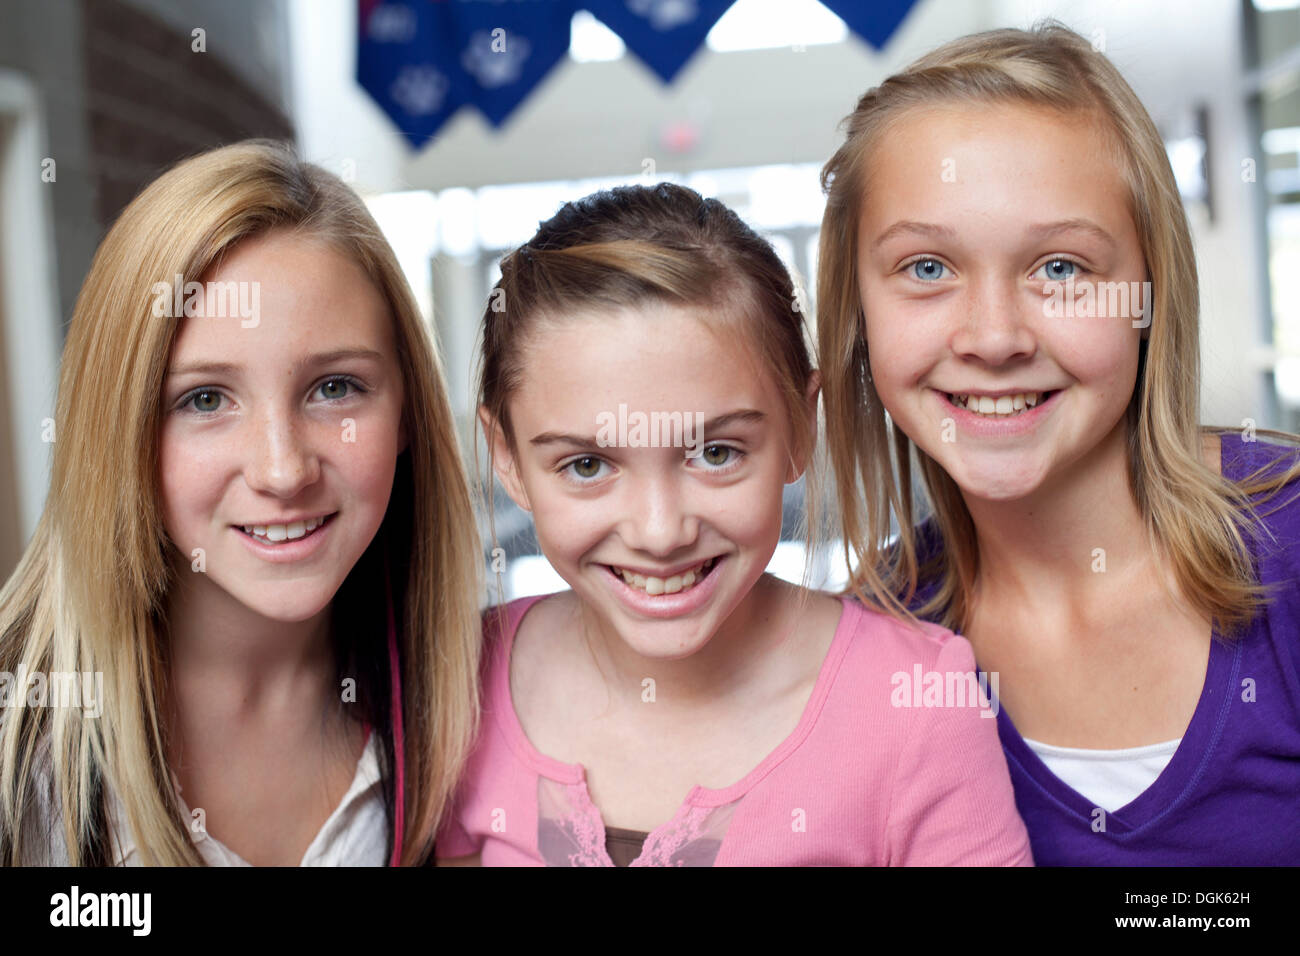 Close Up Portrait Of Three Teen And Pre-Adolescent Girls Smiling Stock Photo 61887465 -6205